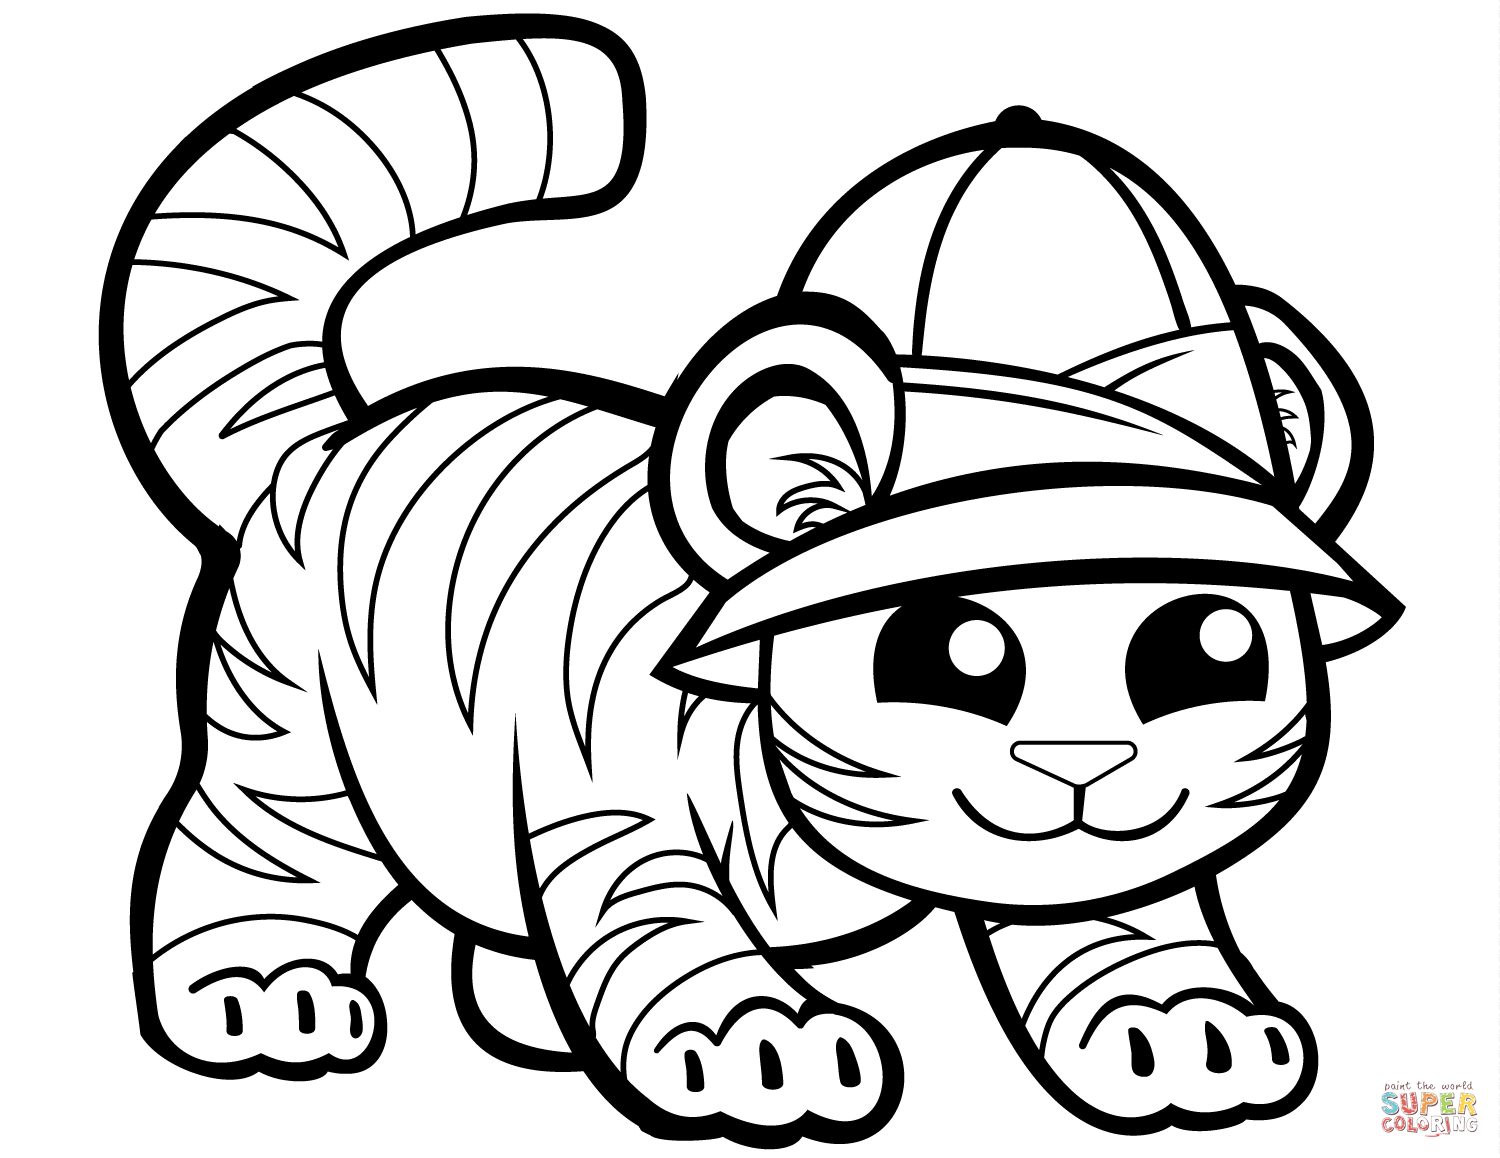 coloring picture of tiger tiger jumps coloring page free printable coloring pages coloring picture tiger of